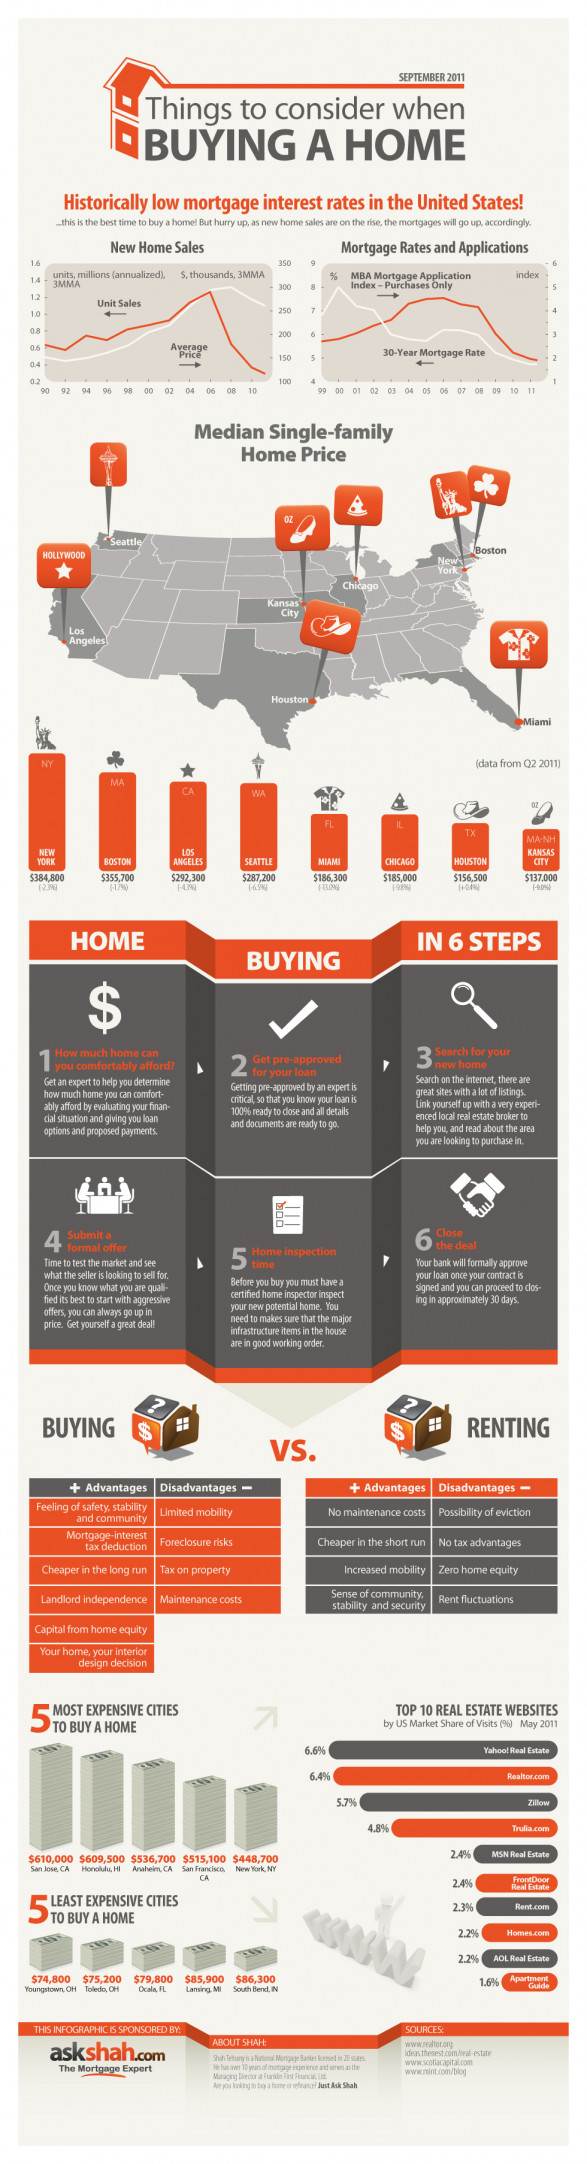 Things to Consider When Buying a Home